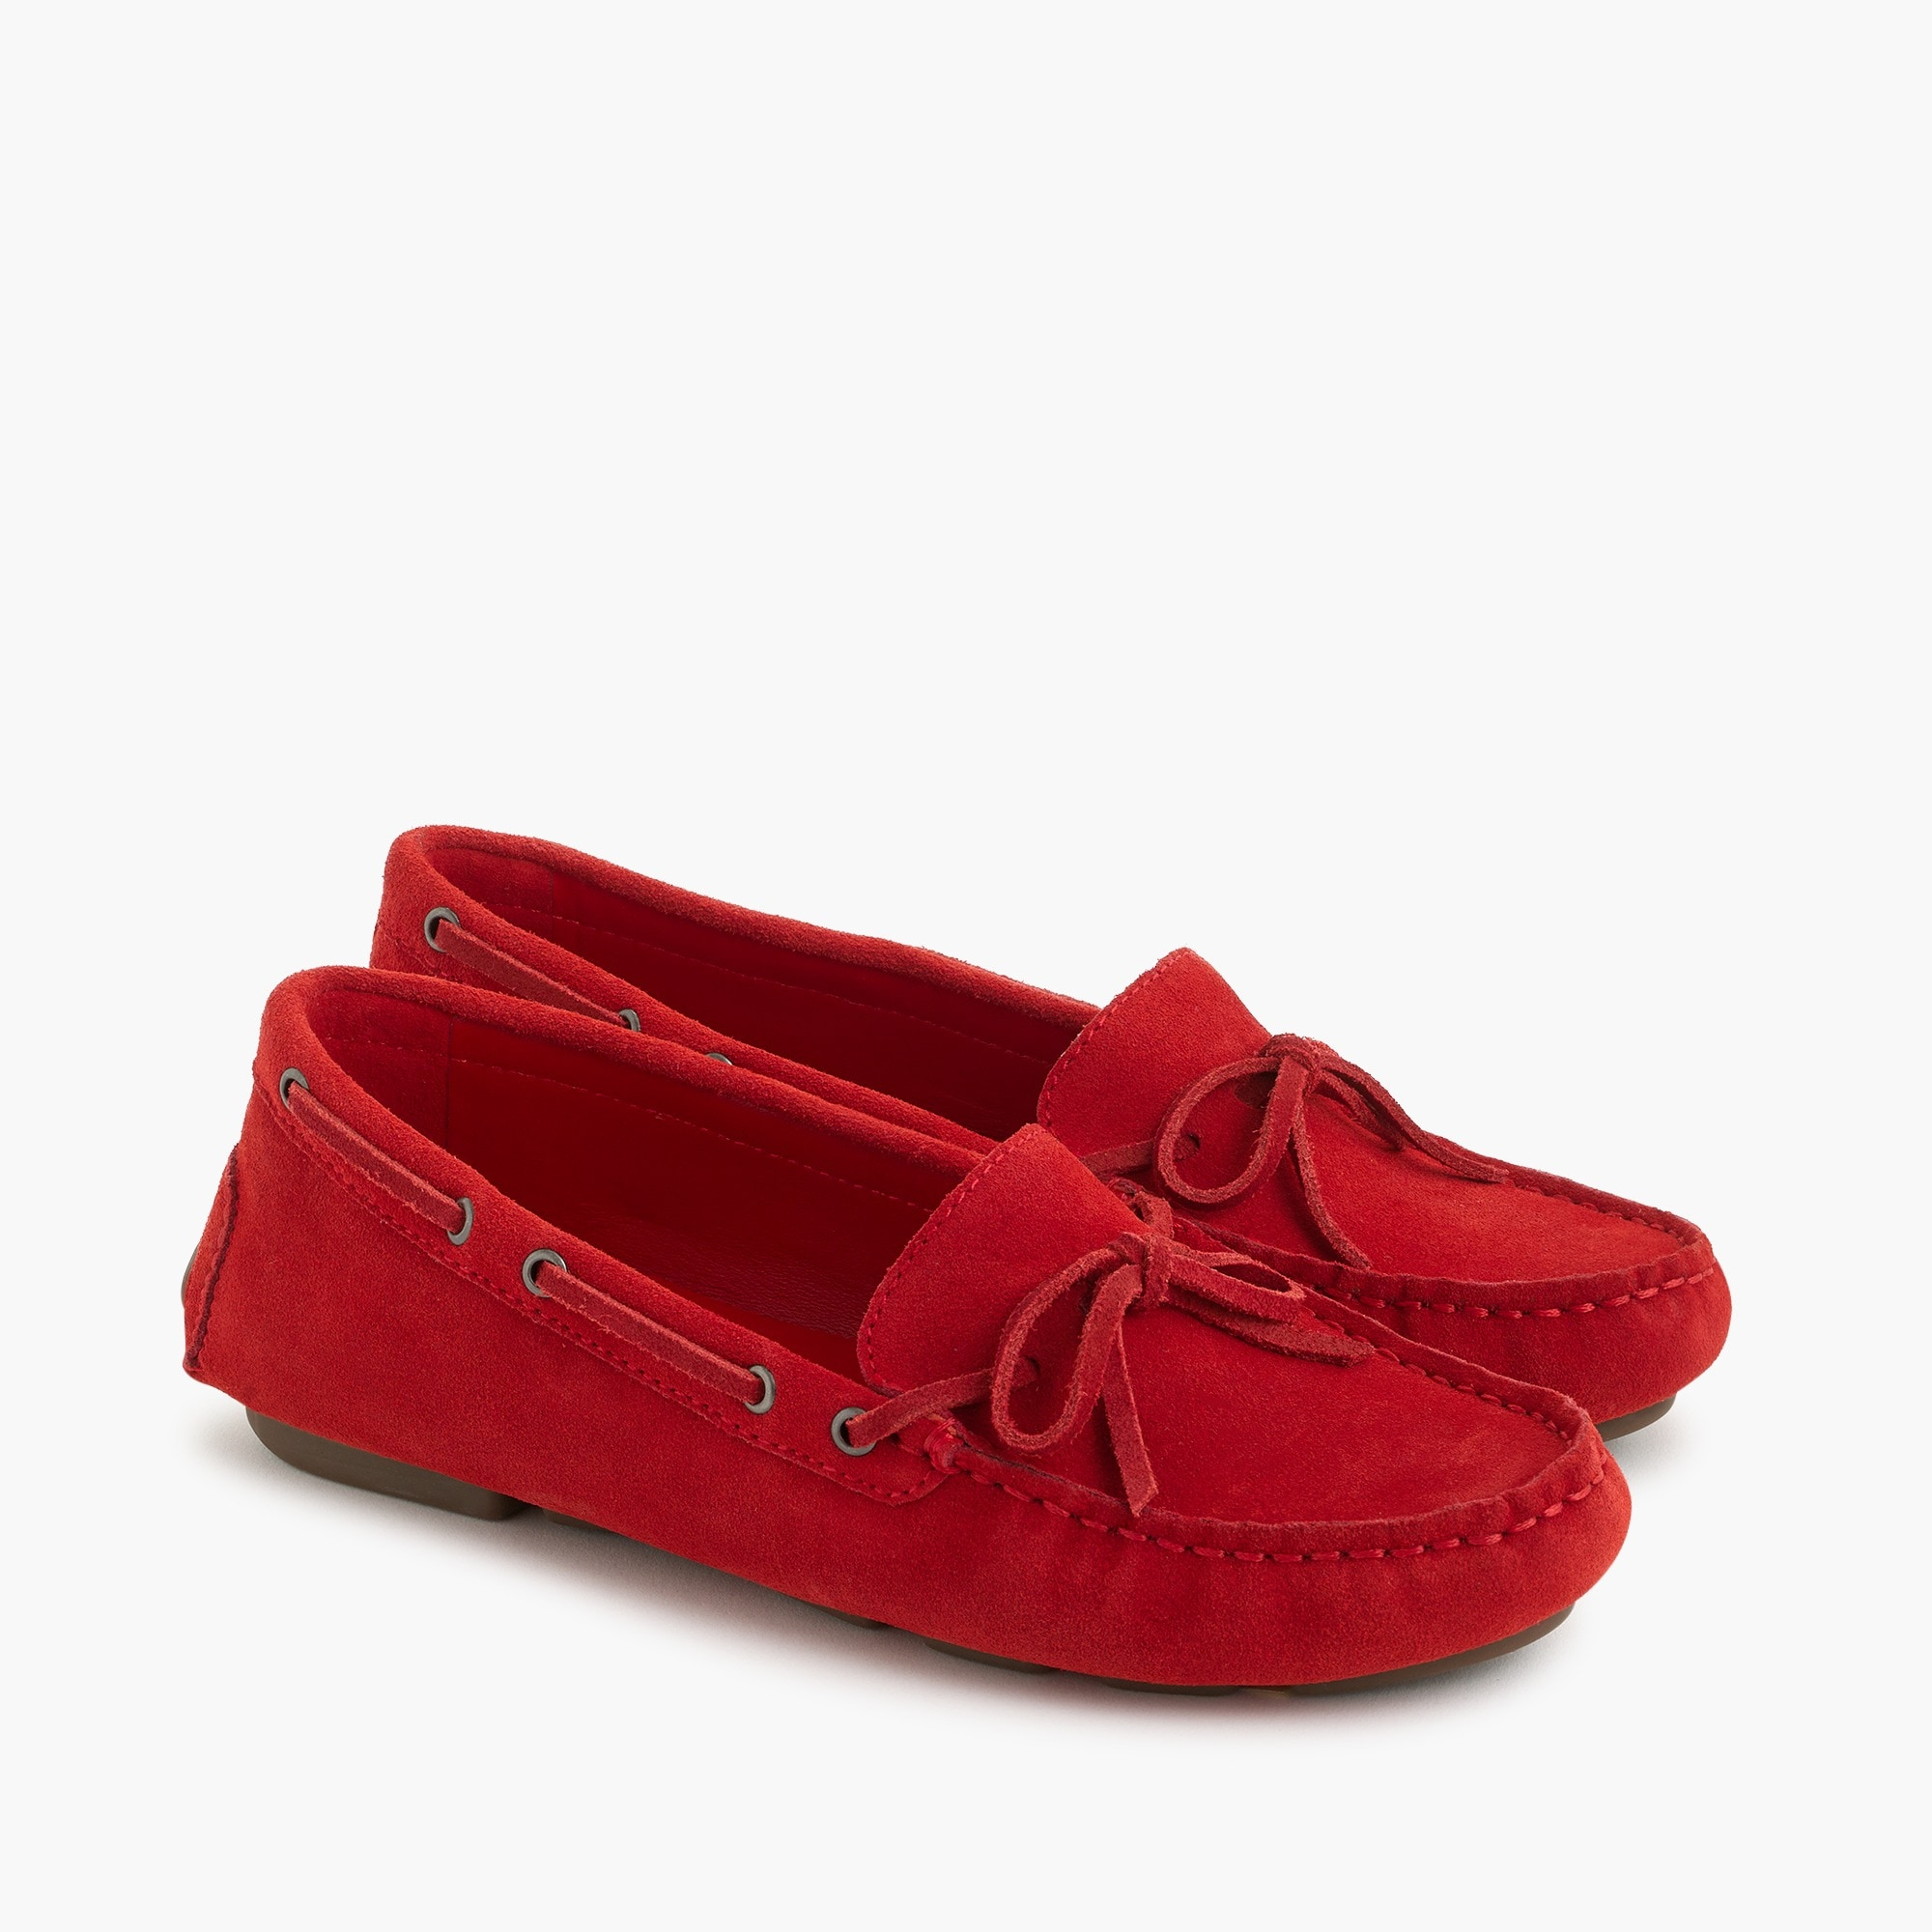 Ladies Suede Moccasins Womens Shoes